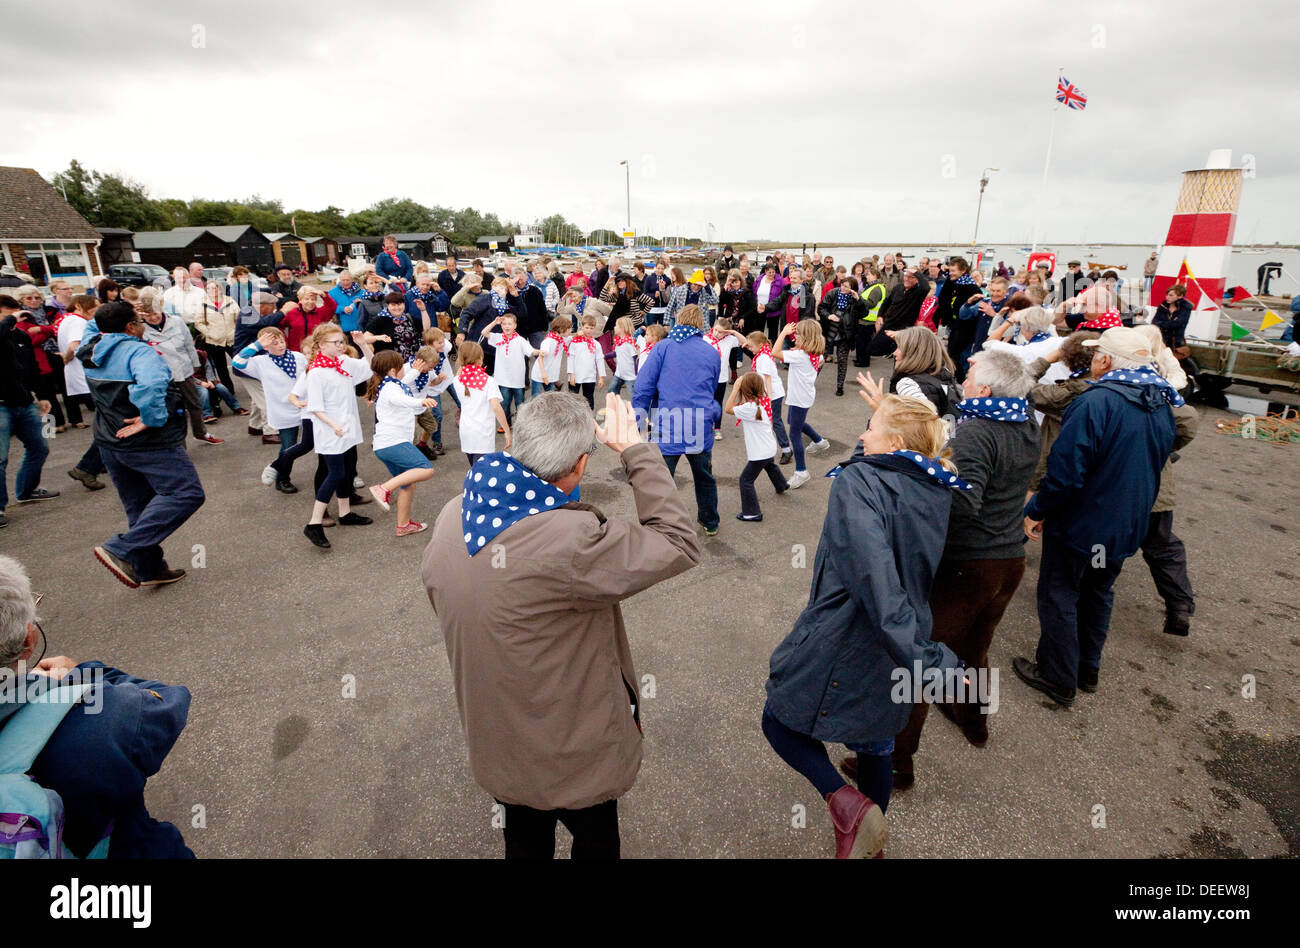 People dancing outdoors at a local Suffolk village fete, Orford, Suffolk UK - Stock Image